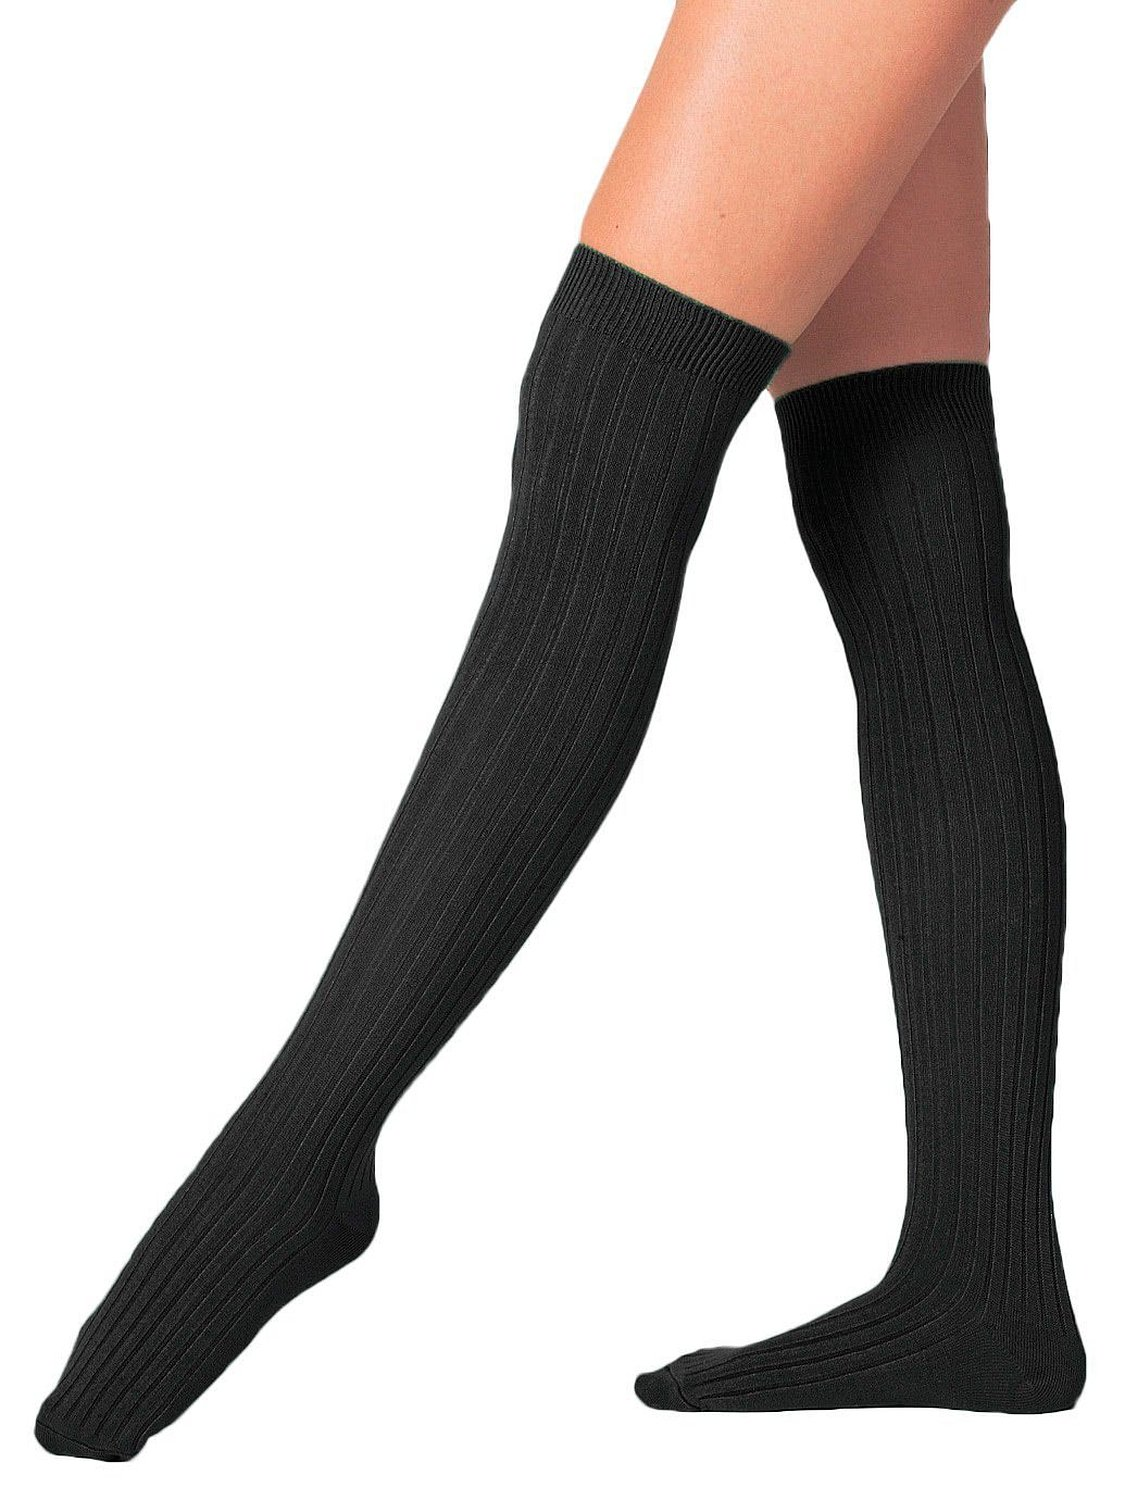 Amazon.com: American Apparel Ribbed Modal Over-the-Knee Sock - Black / One Size: Clothing